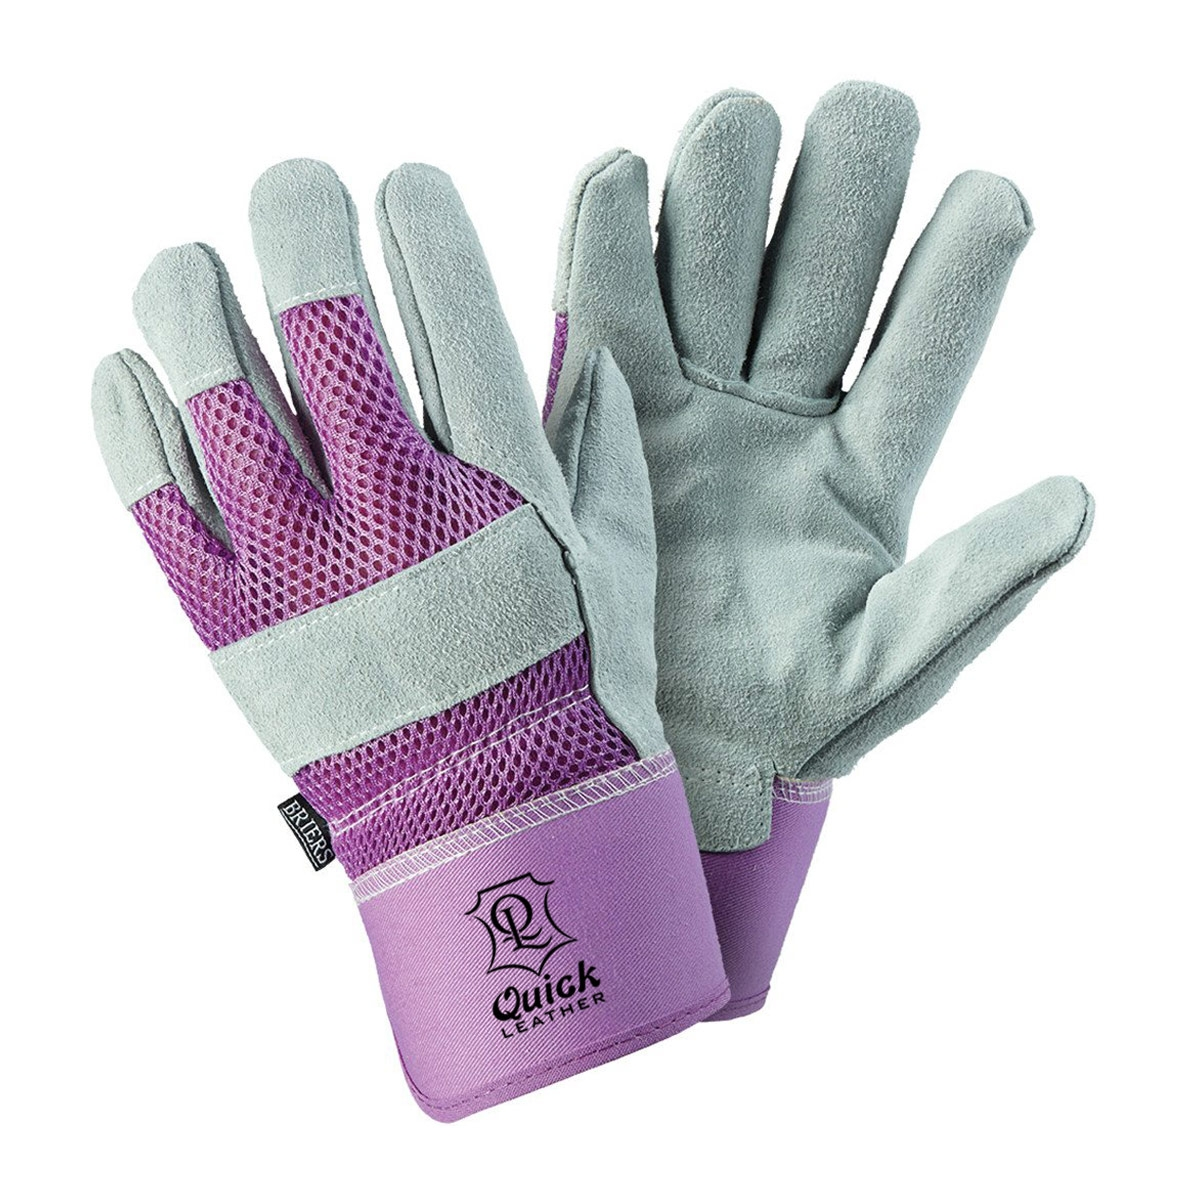 Garden Gloves with Claw For Digging Planting QL-305